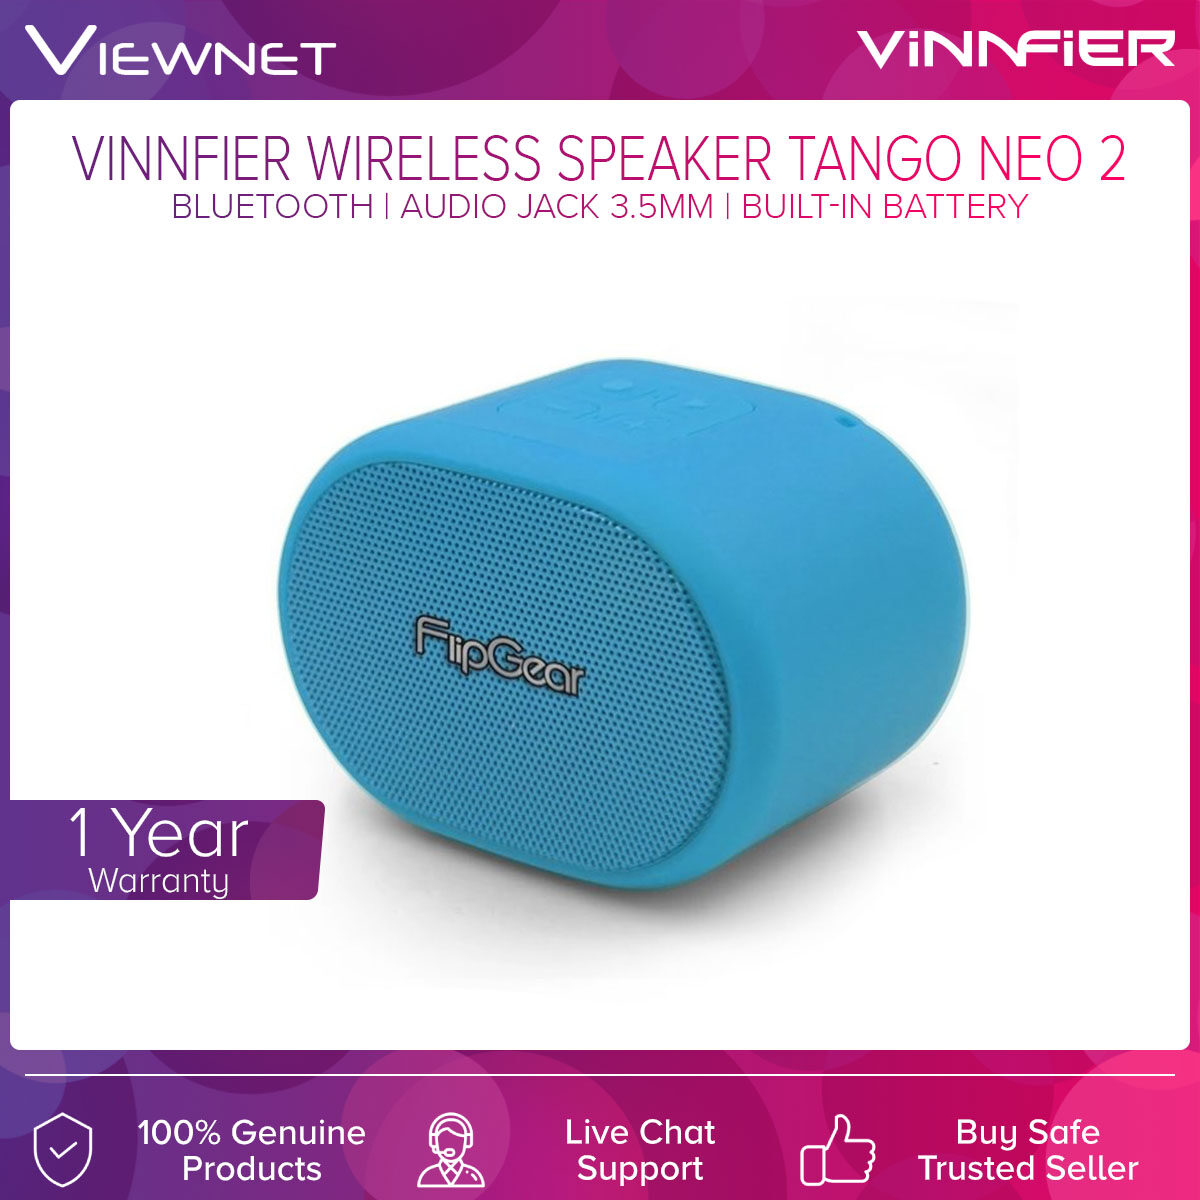 Vinnfier Wireless Portable Speaker Tango Neo 2 with Bluetooth Connection, Audio Jack 3.5MM, USB Support, SD Card Slot, FM Radio, Up To 4 Hours Battery Life